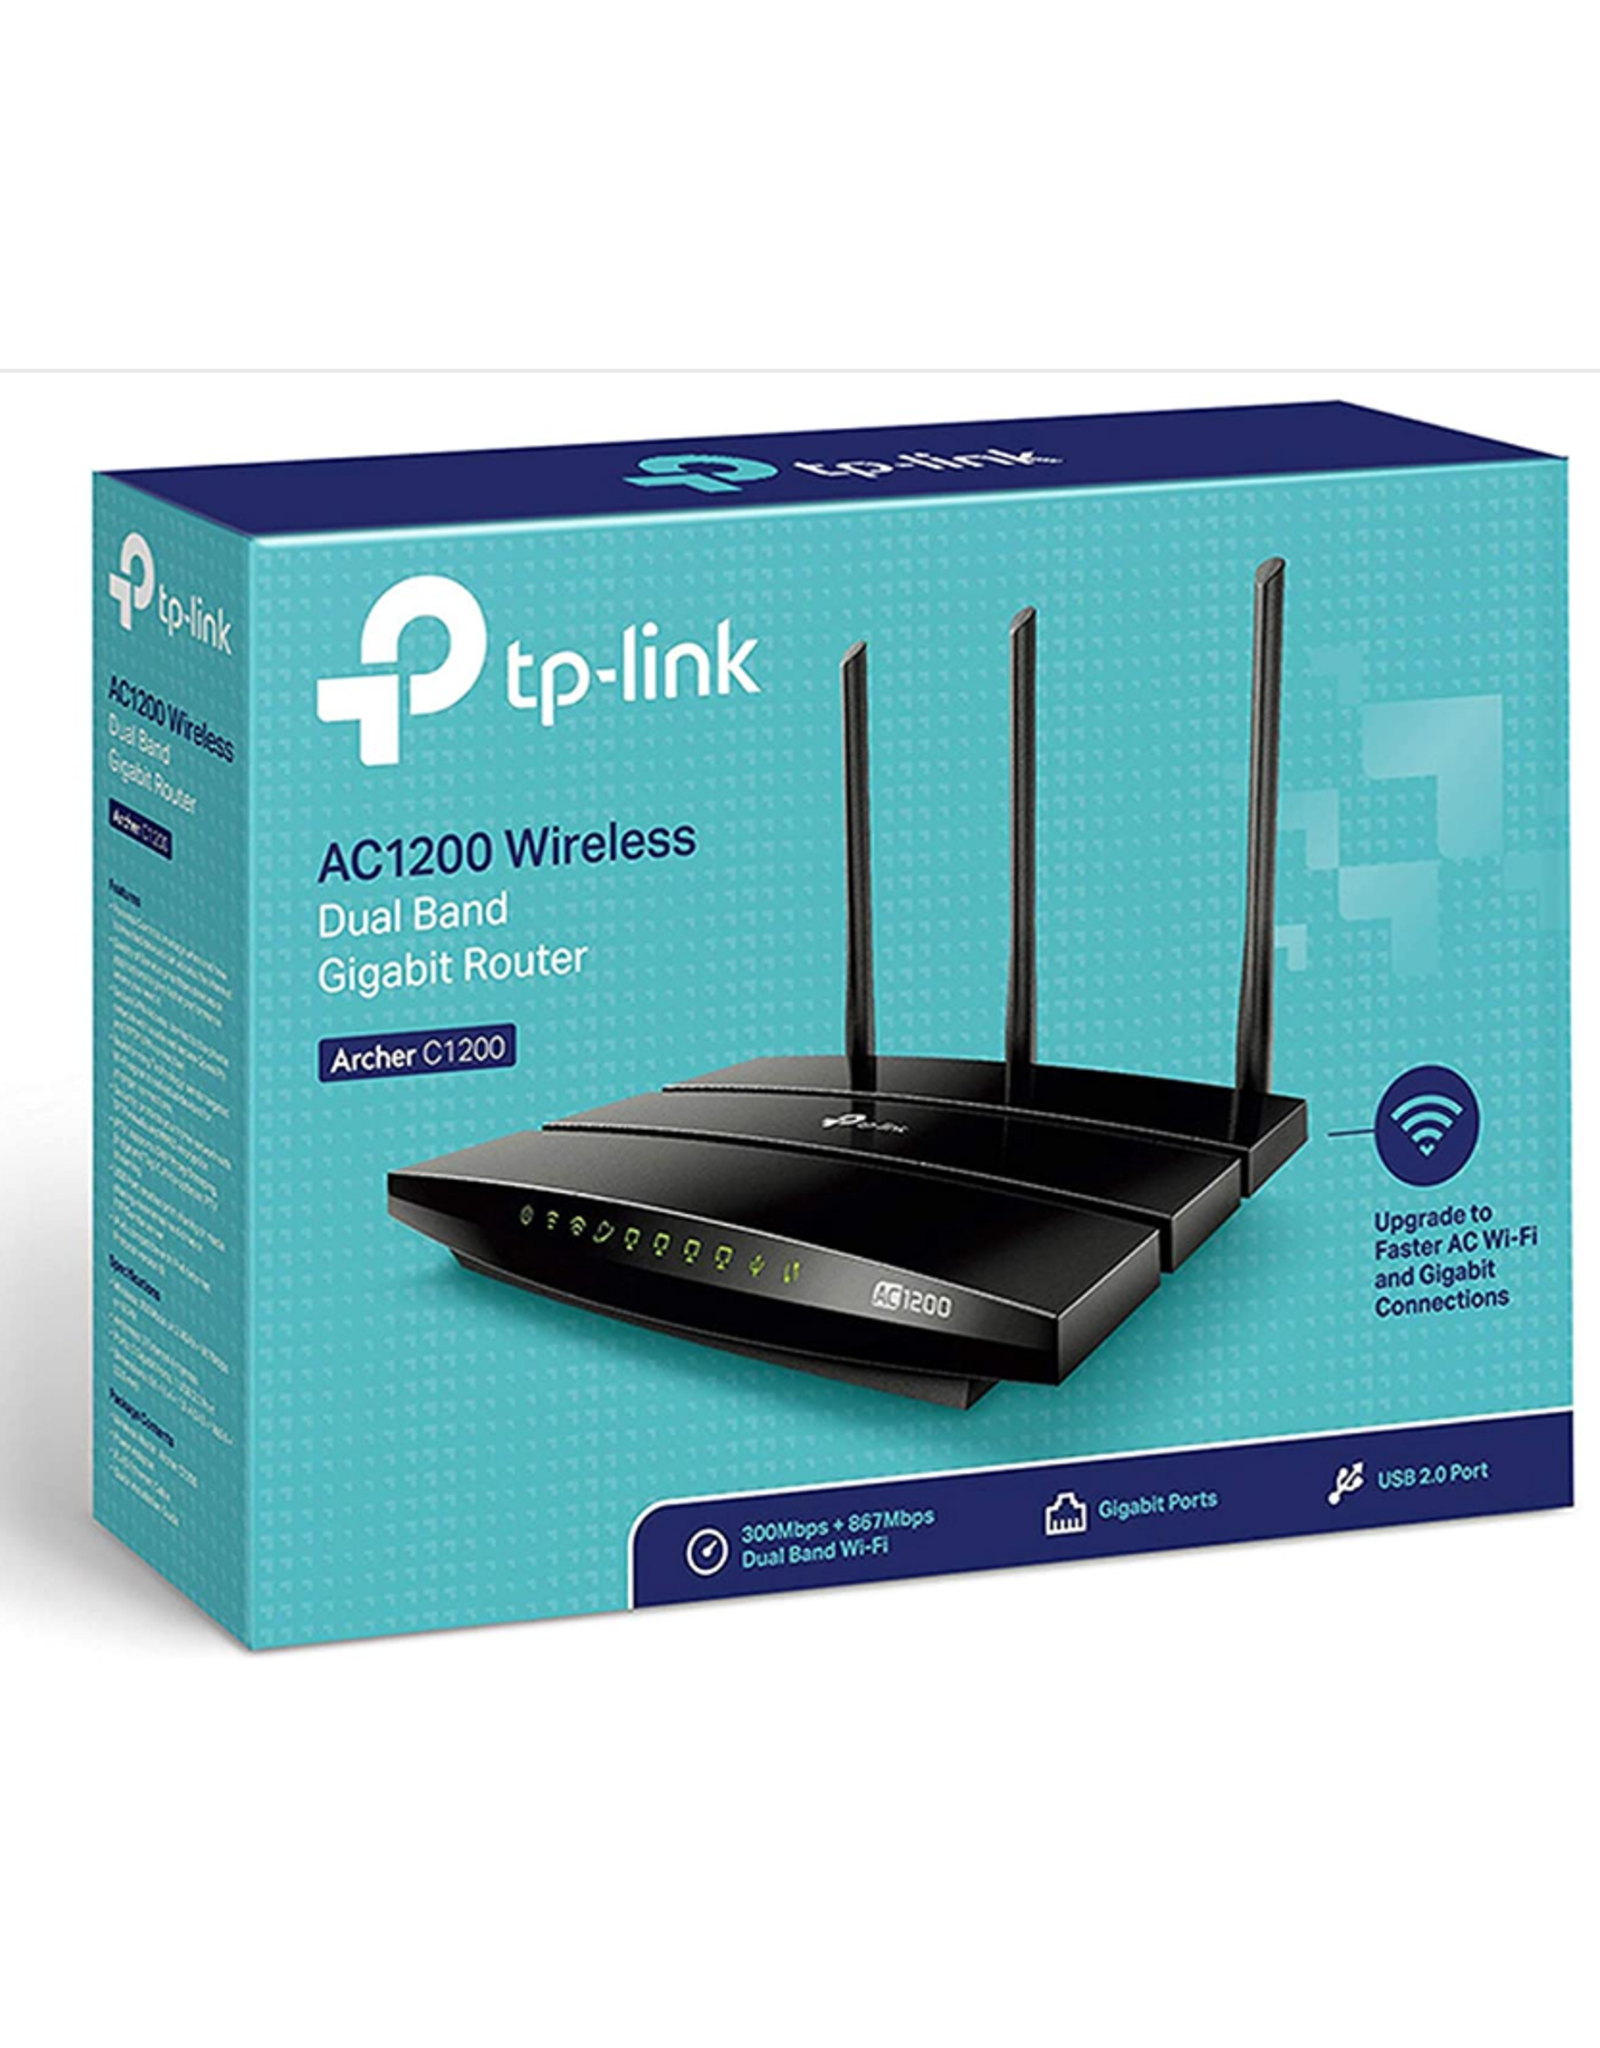 TP-Link TP-Link AC1200 Wireless Dual Band Gigabit Router